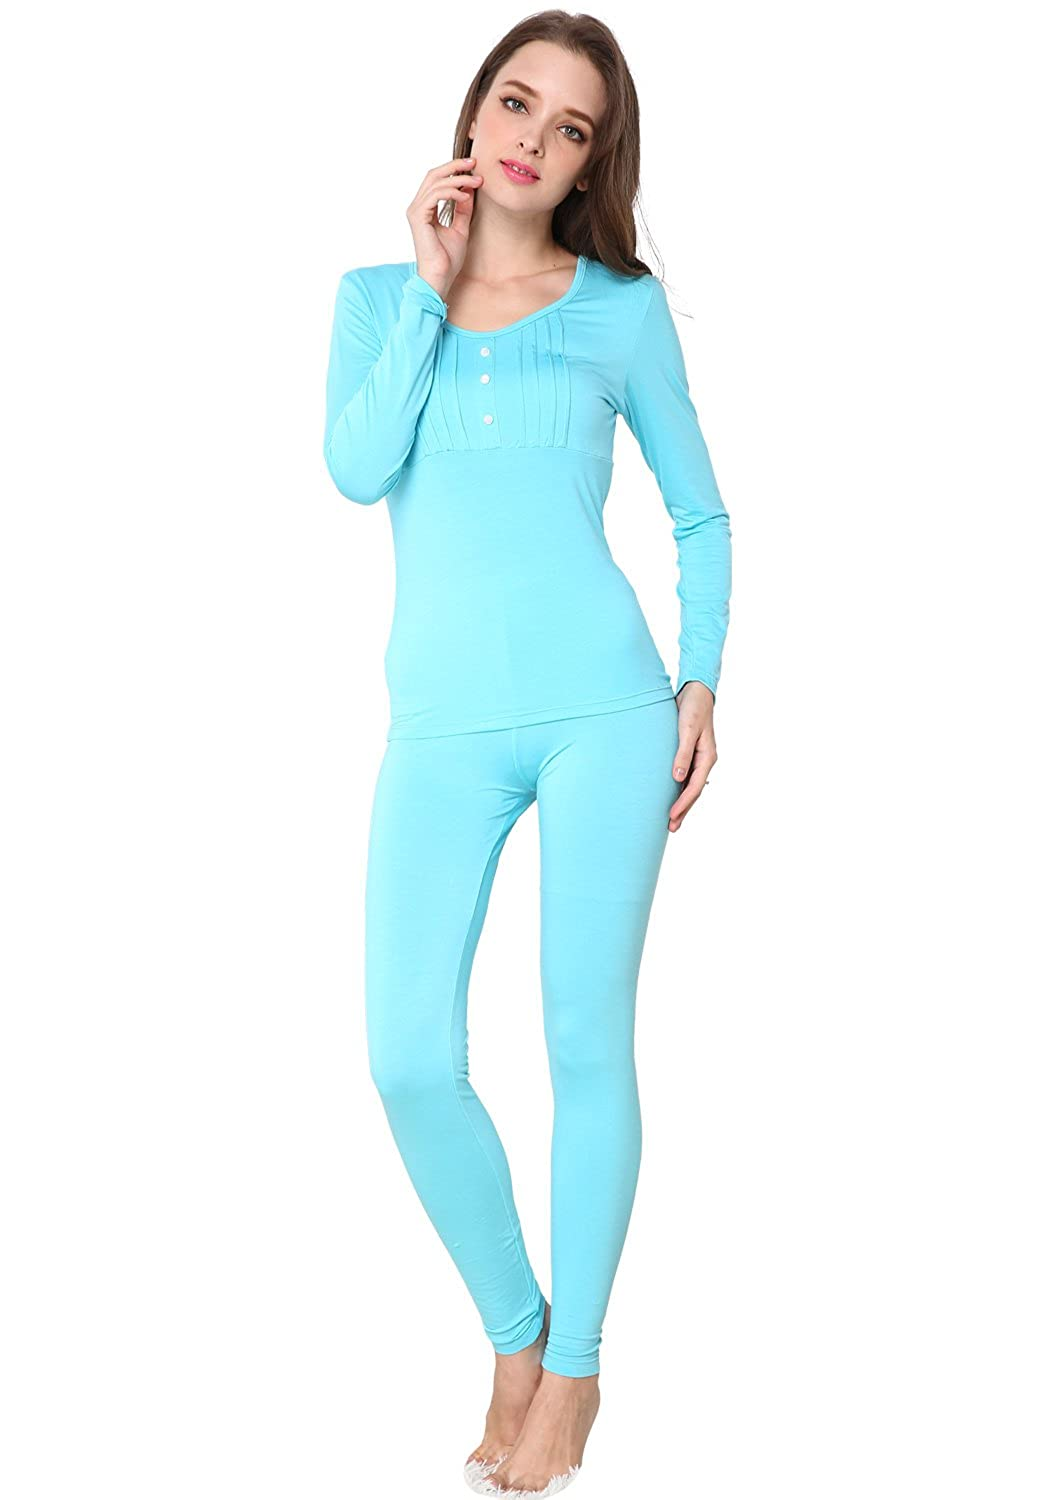 Godsen Women's Thermal Set Long Sleeve Shirts & Pants